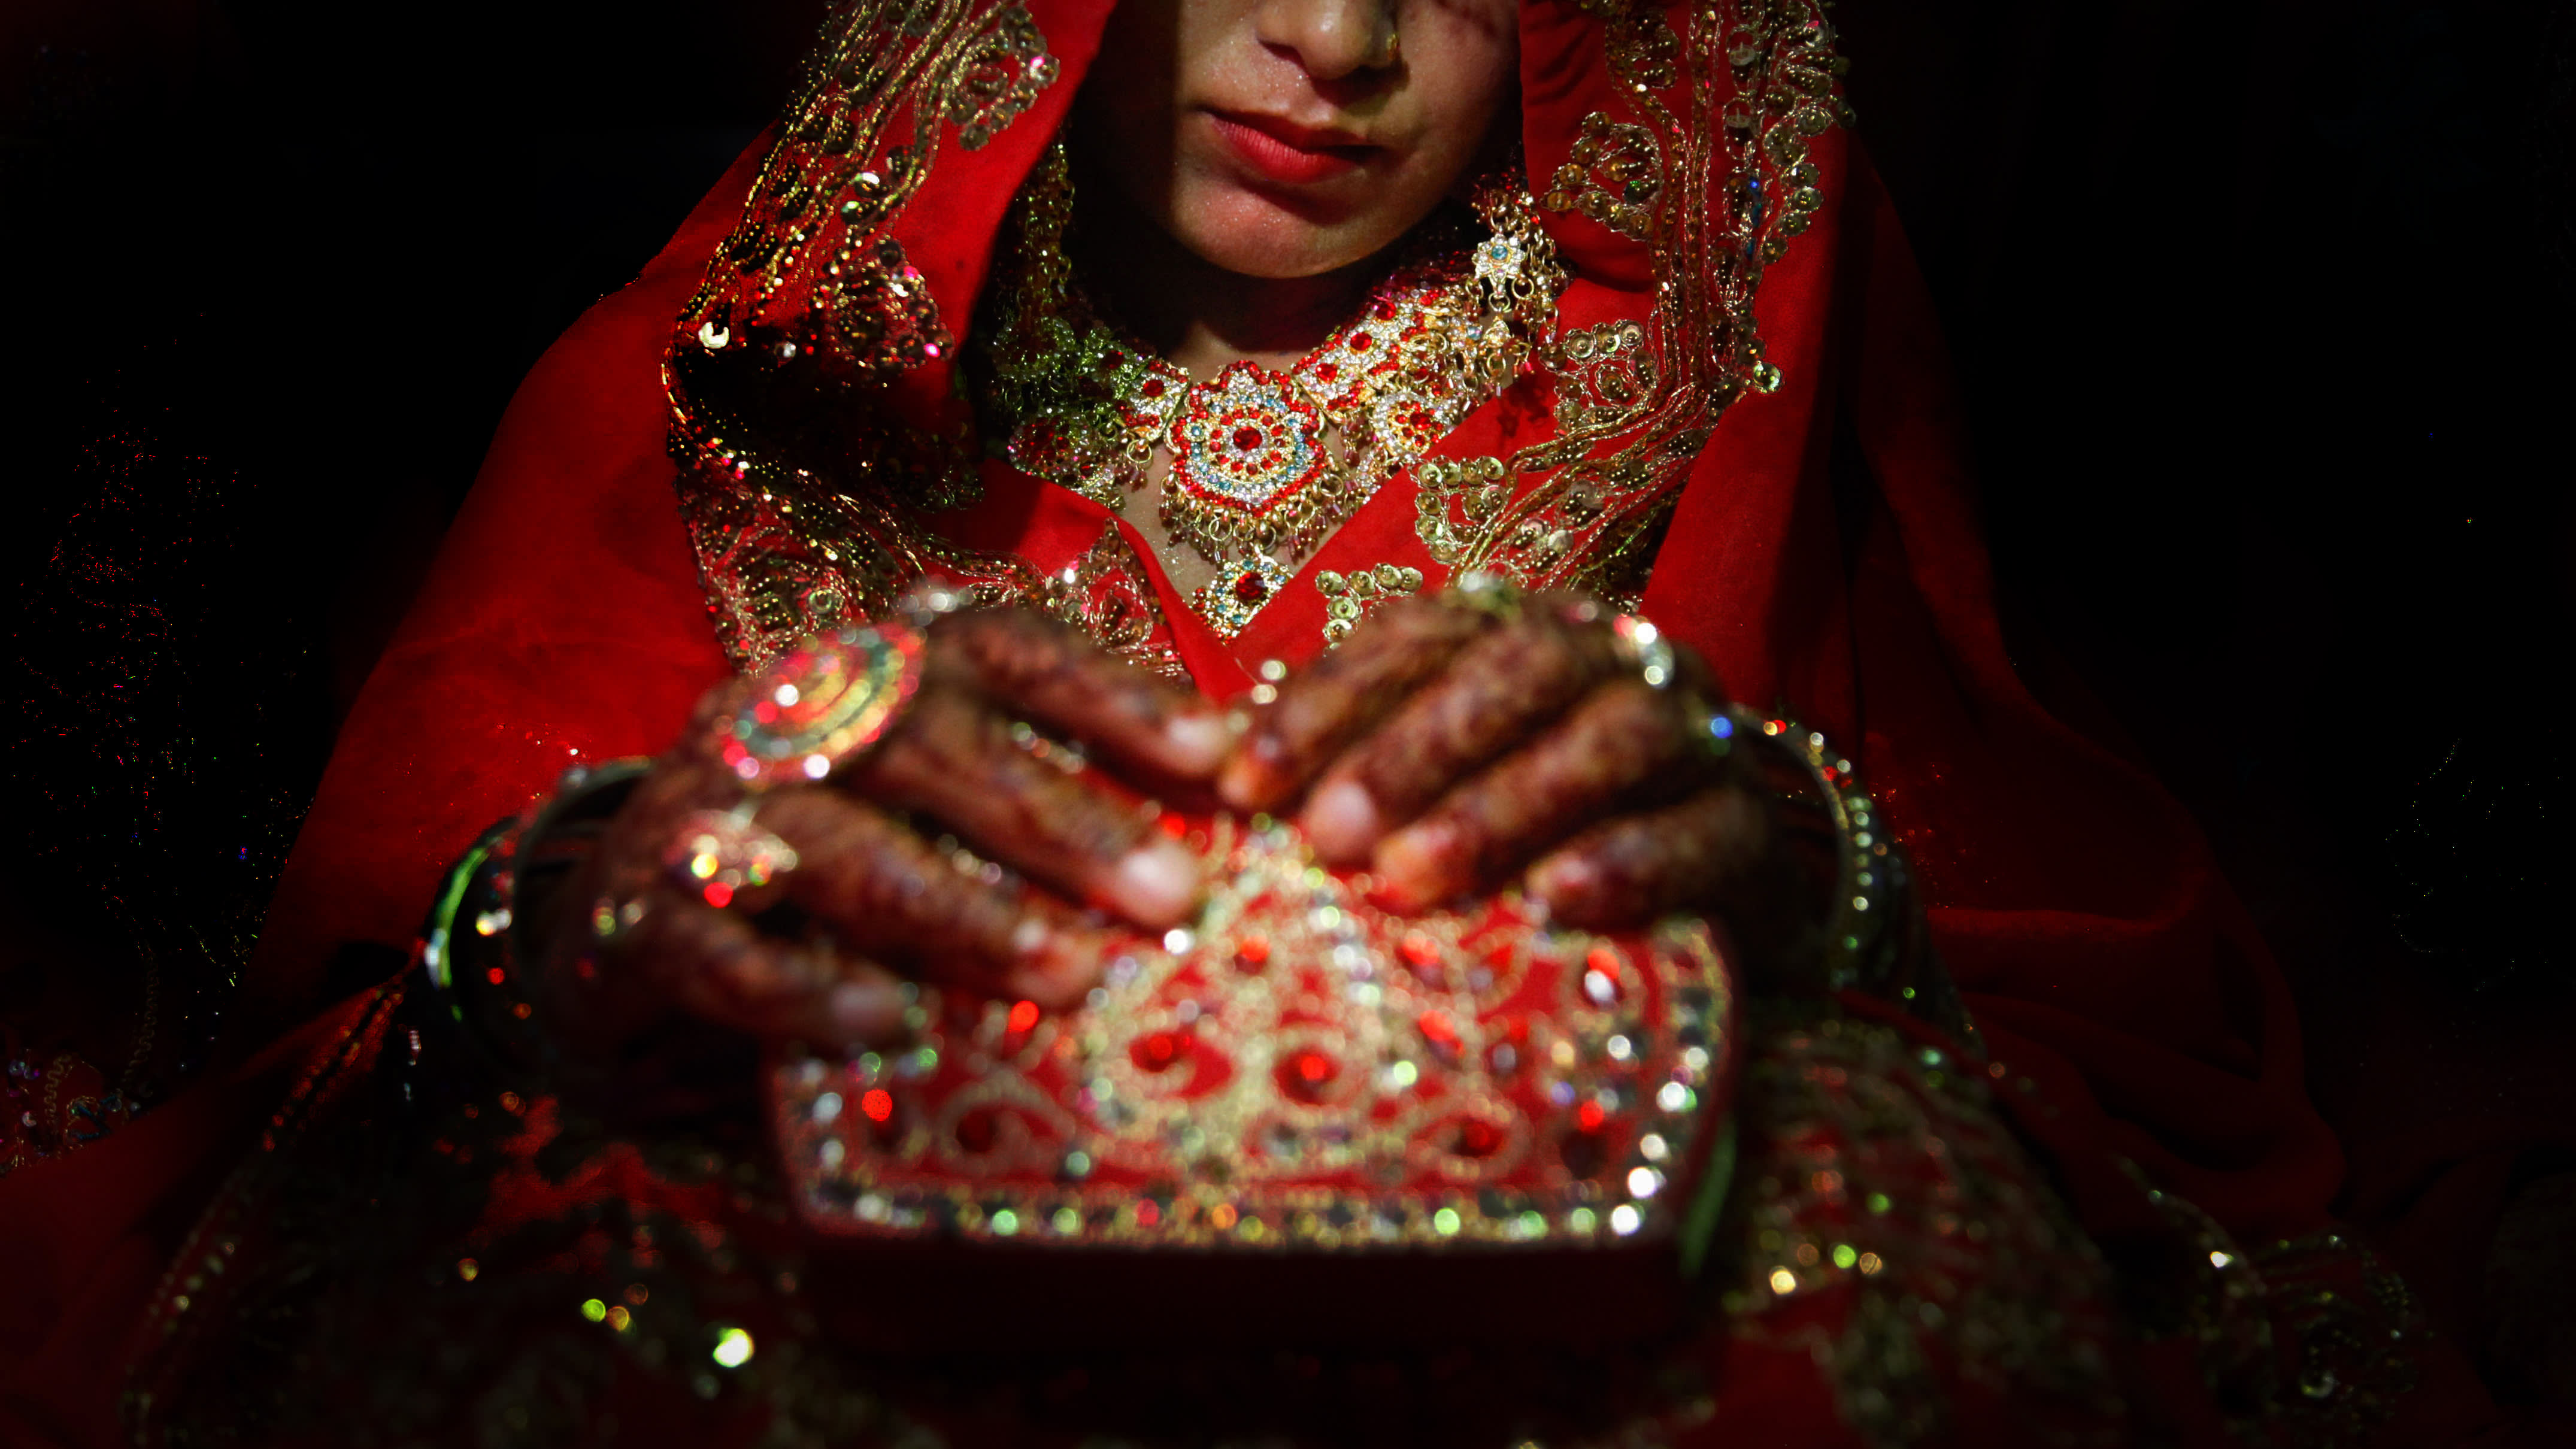 Chinese illegal marriage operators exploit young Pakistani women